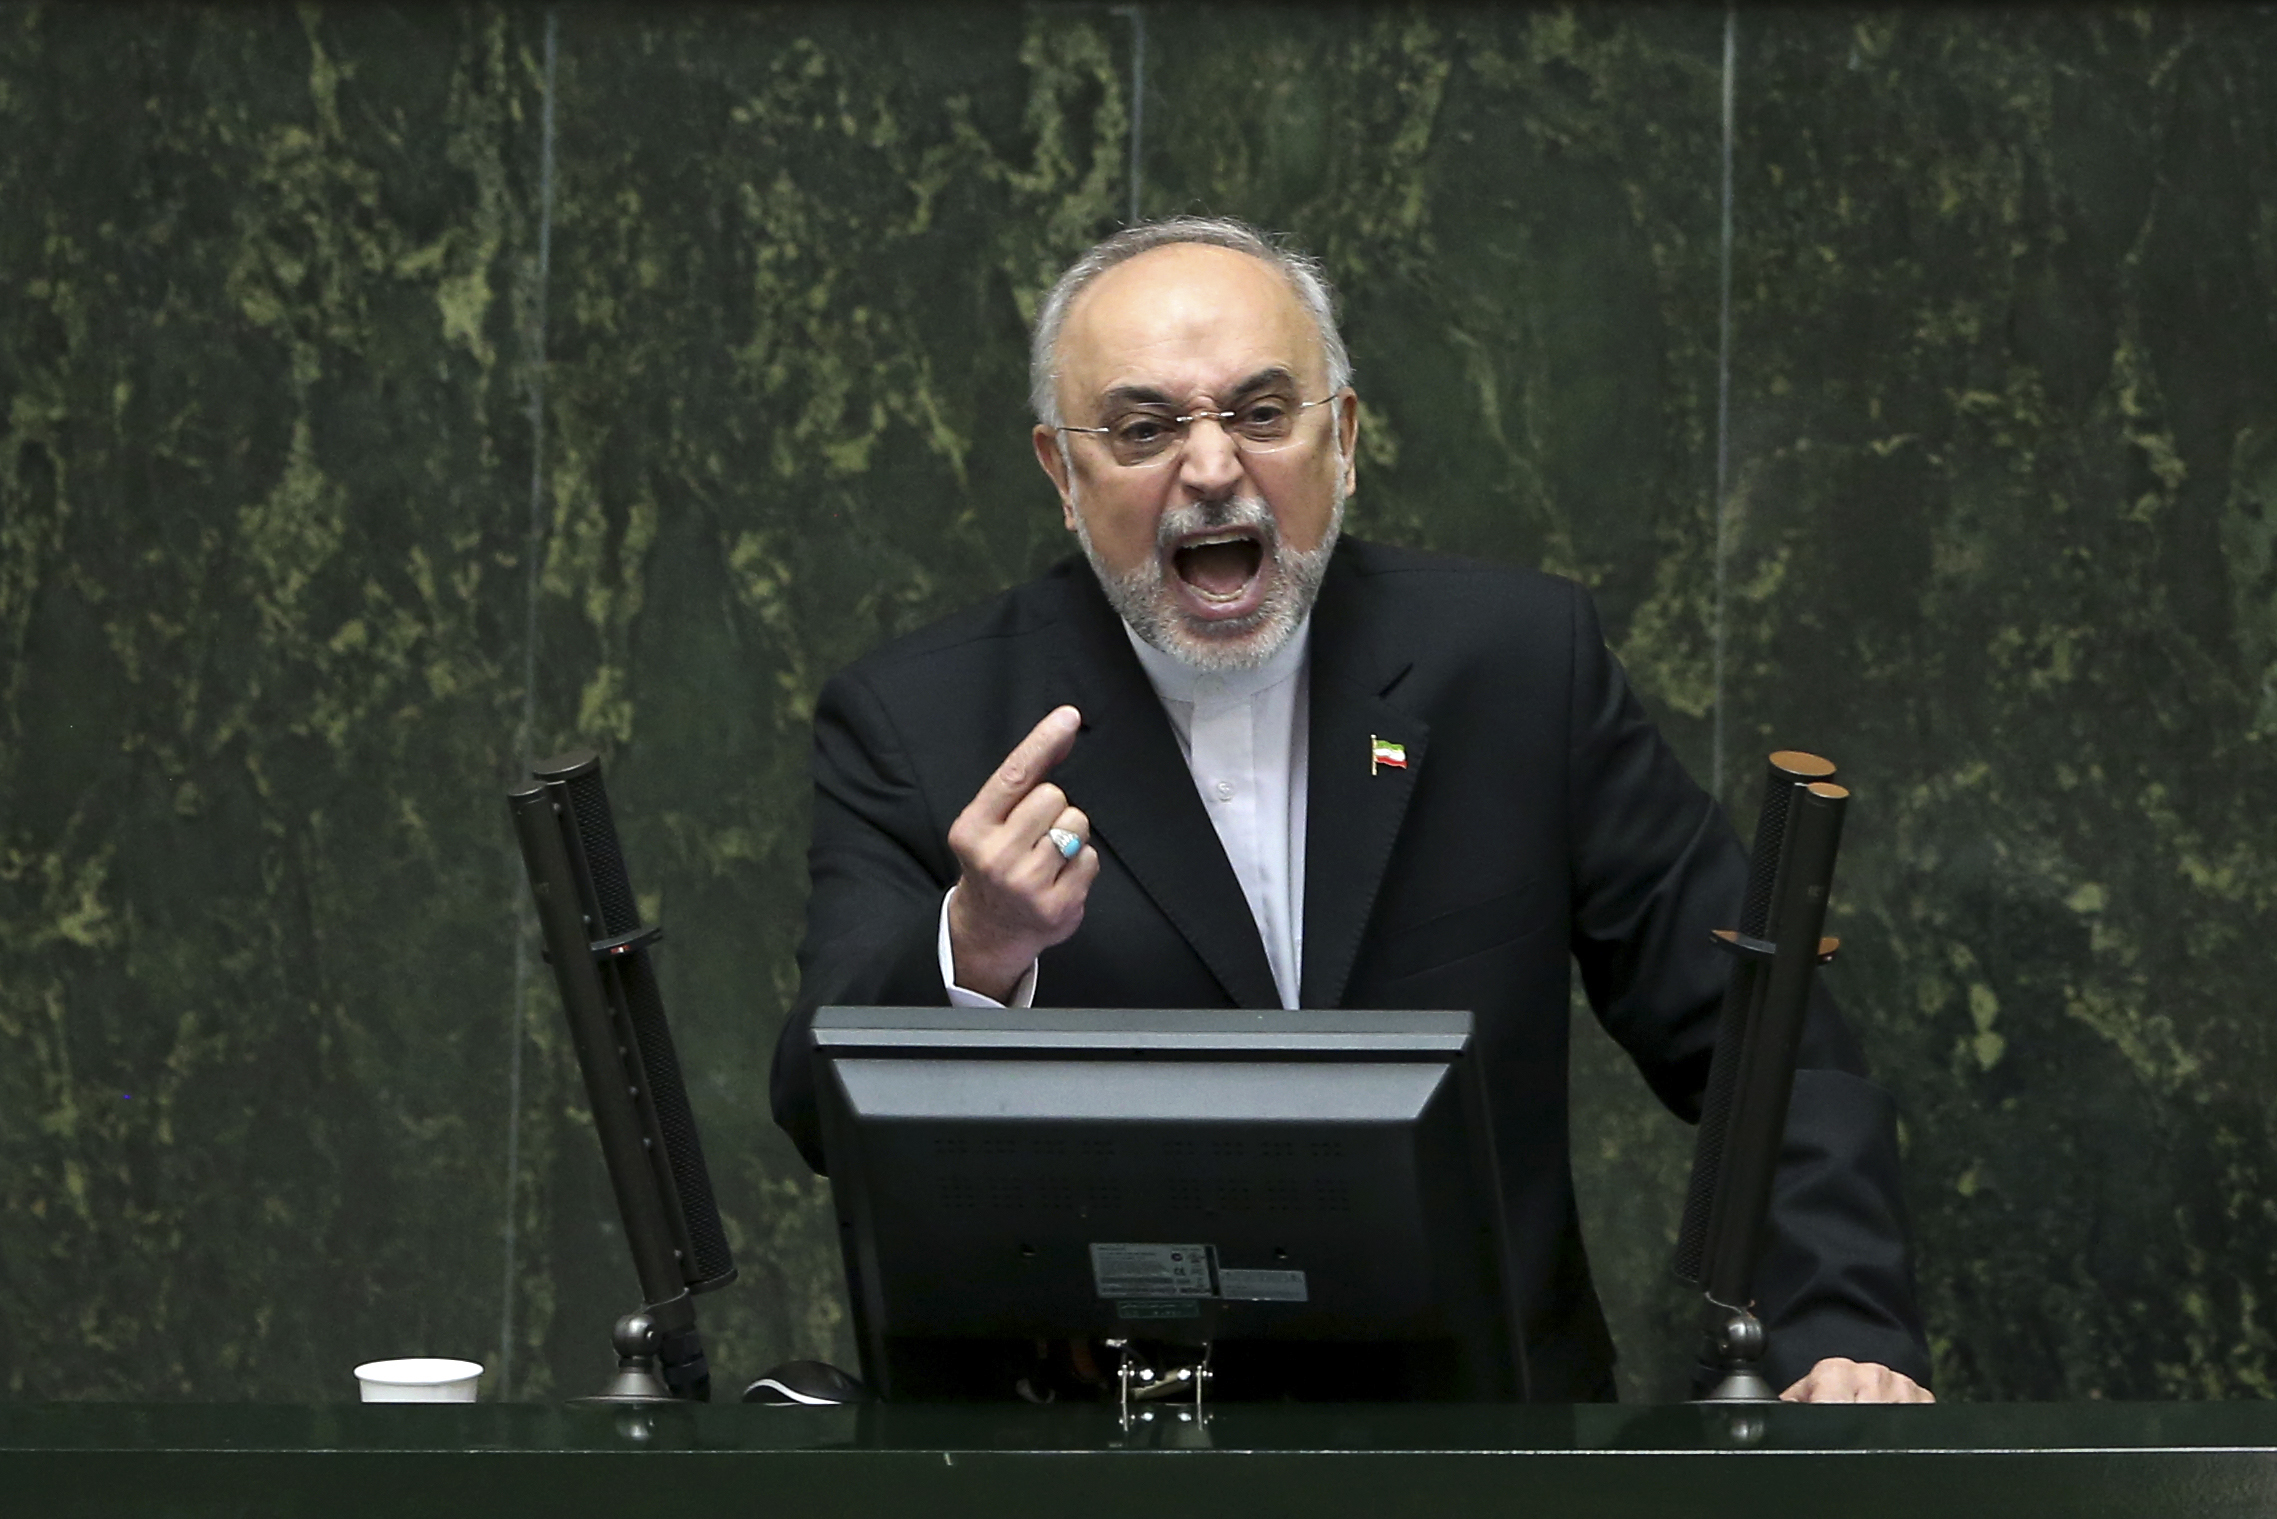 Head of Iran's Atomic Energy Organization Ali Akbar Salehi speaks in an open session of parliament while discussing a bill on Iran's nuclear deal with world powers, in Tehran, Iran, Oct. 11, 2015.